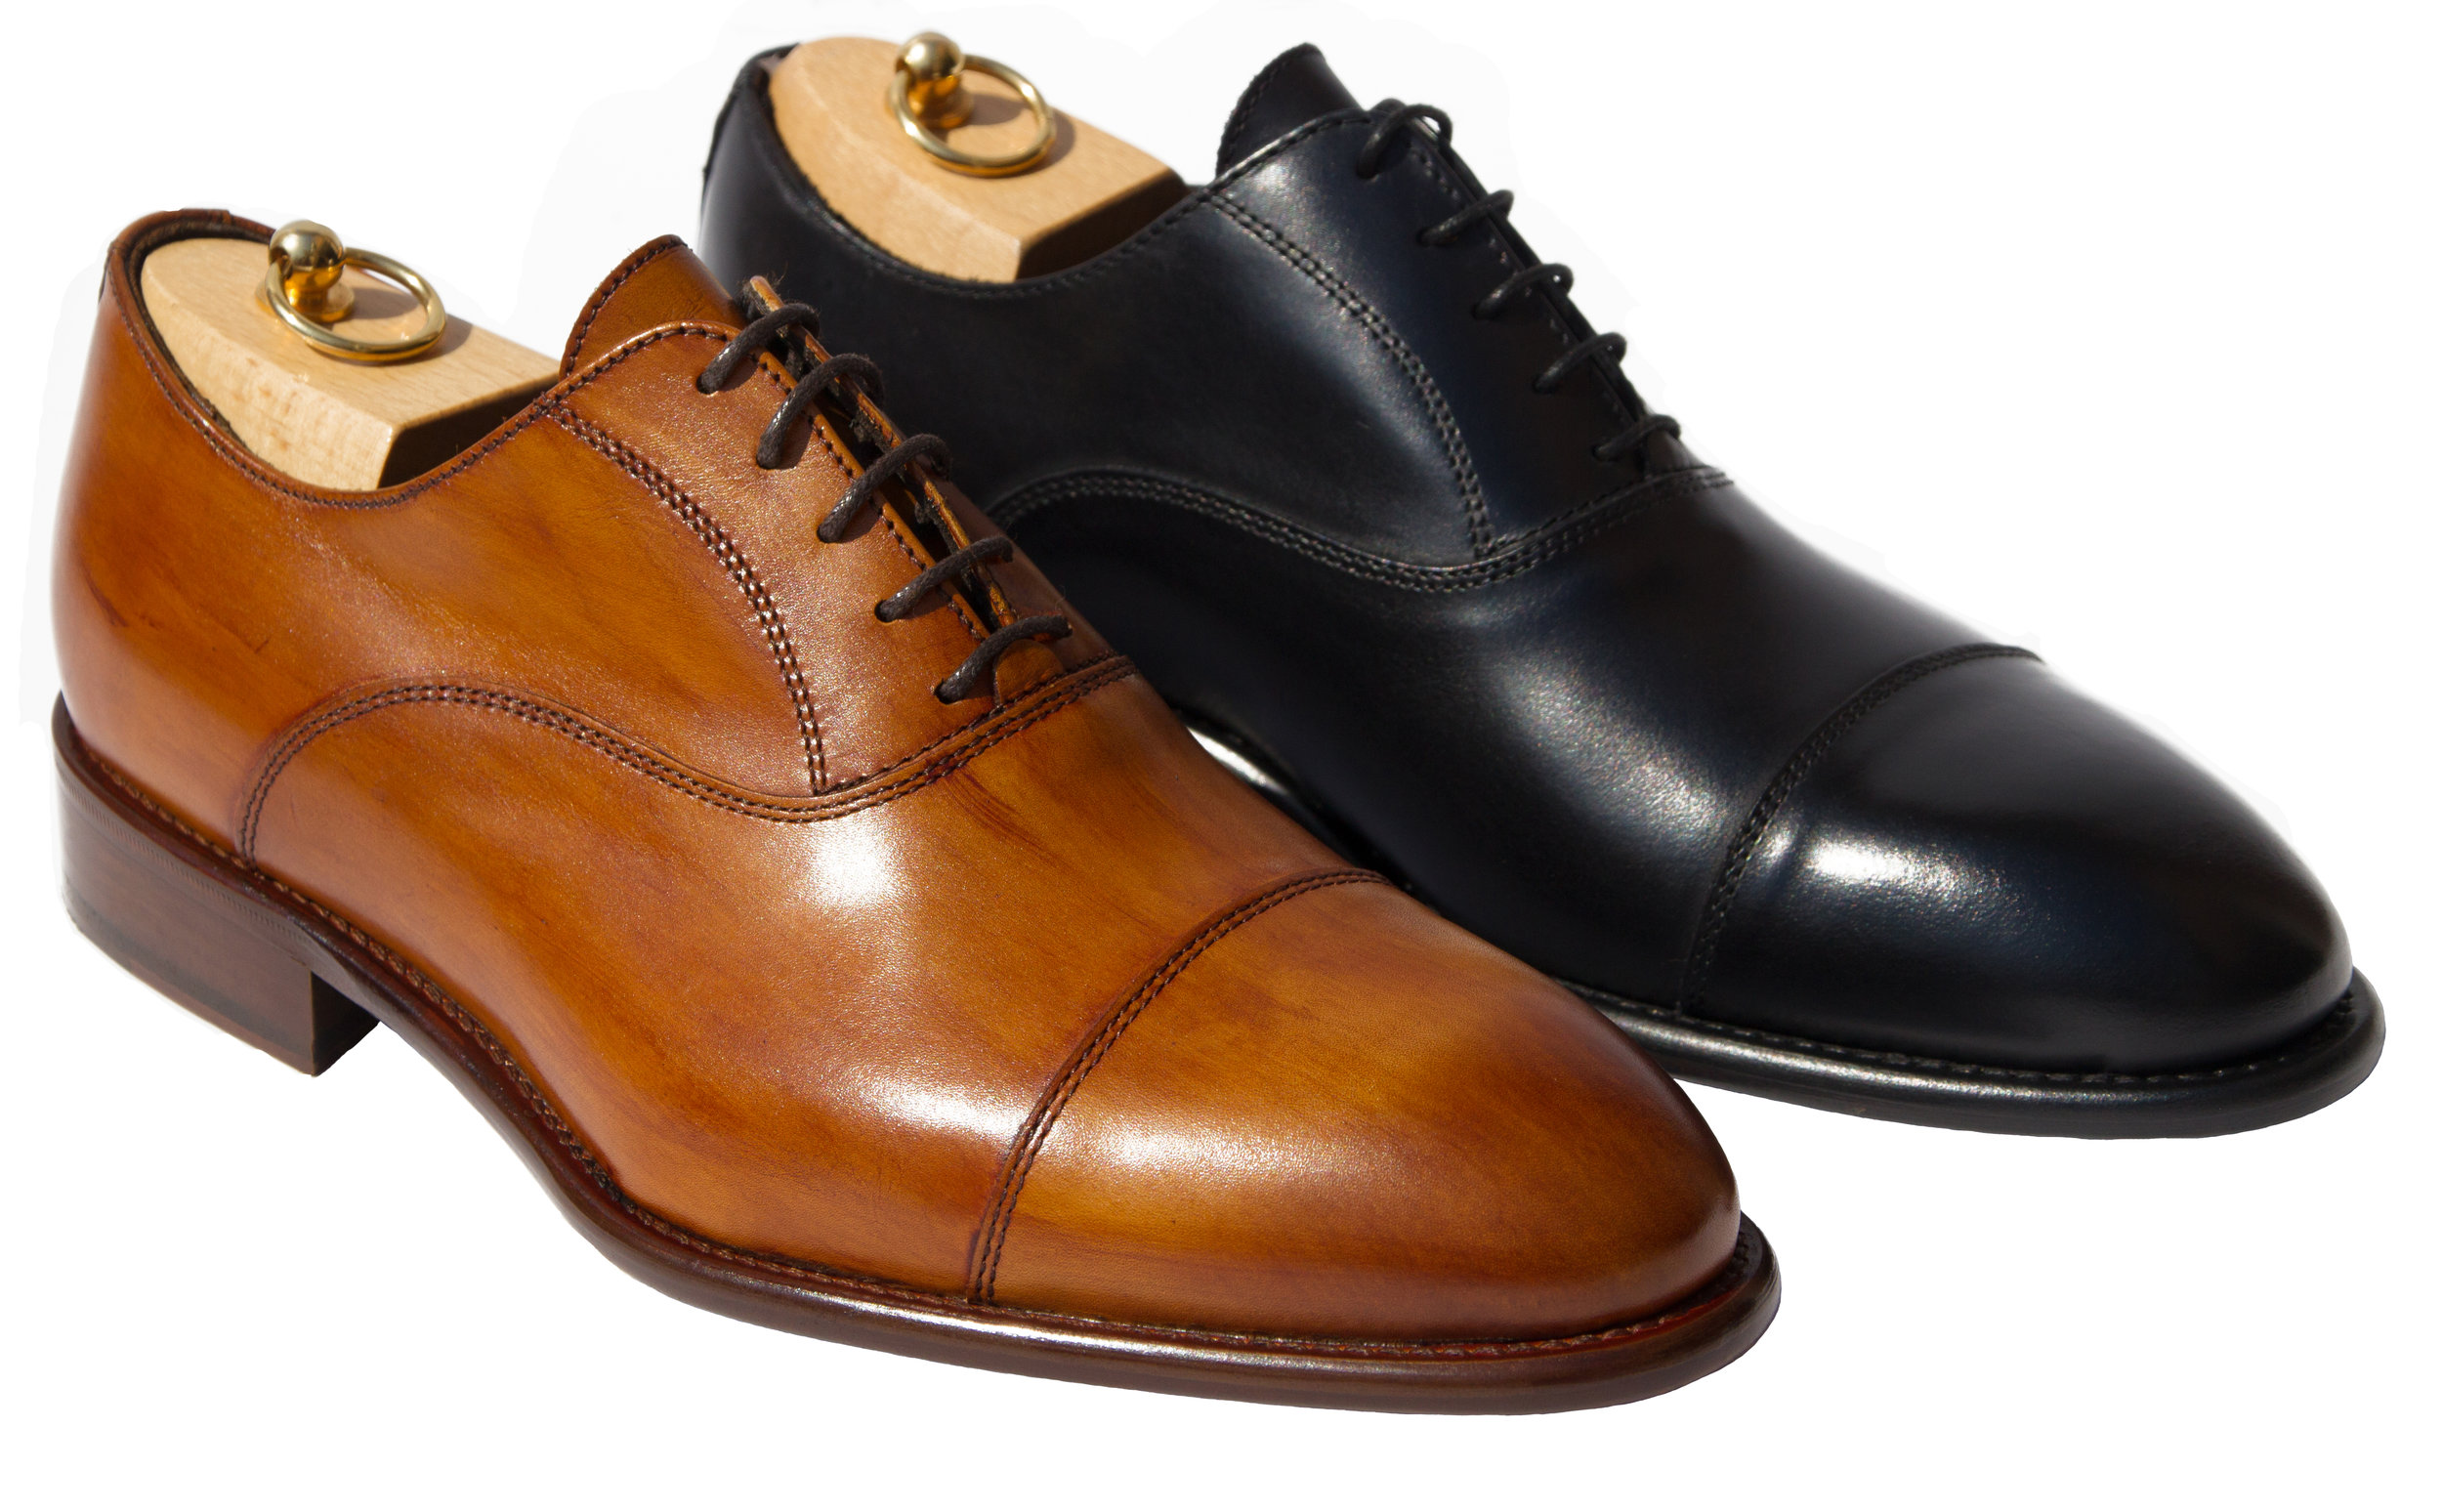 Style # 2571: Caramel, Black  Handpainted Cayenne Calf Oxford Cap Toe  Sizes available: 8 to 15 US, including half sizes